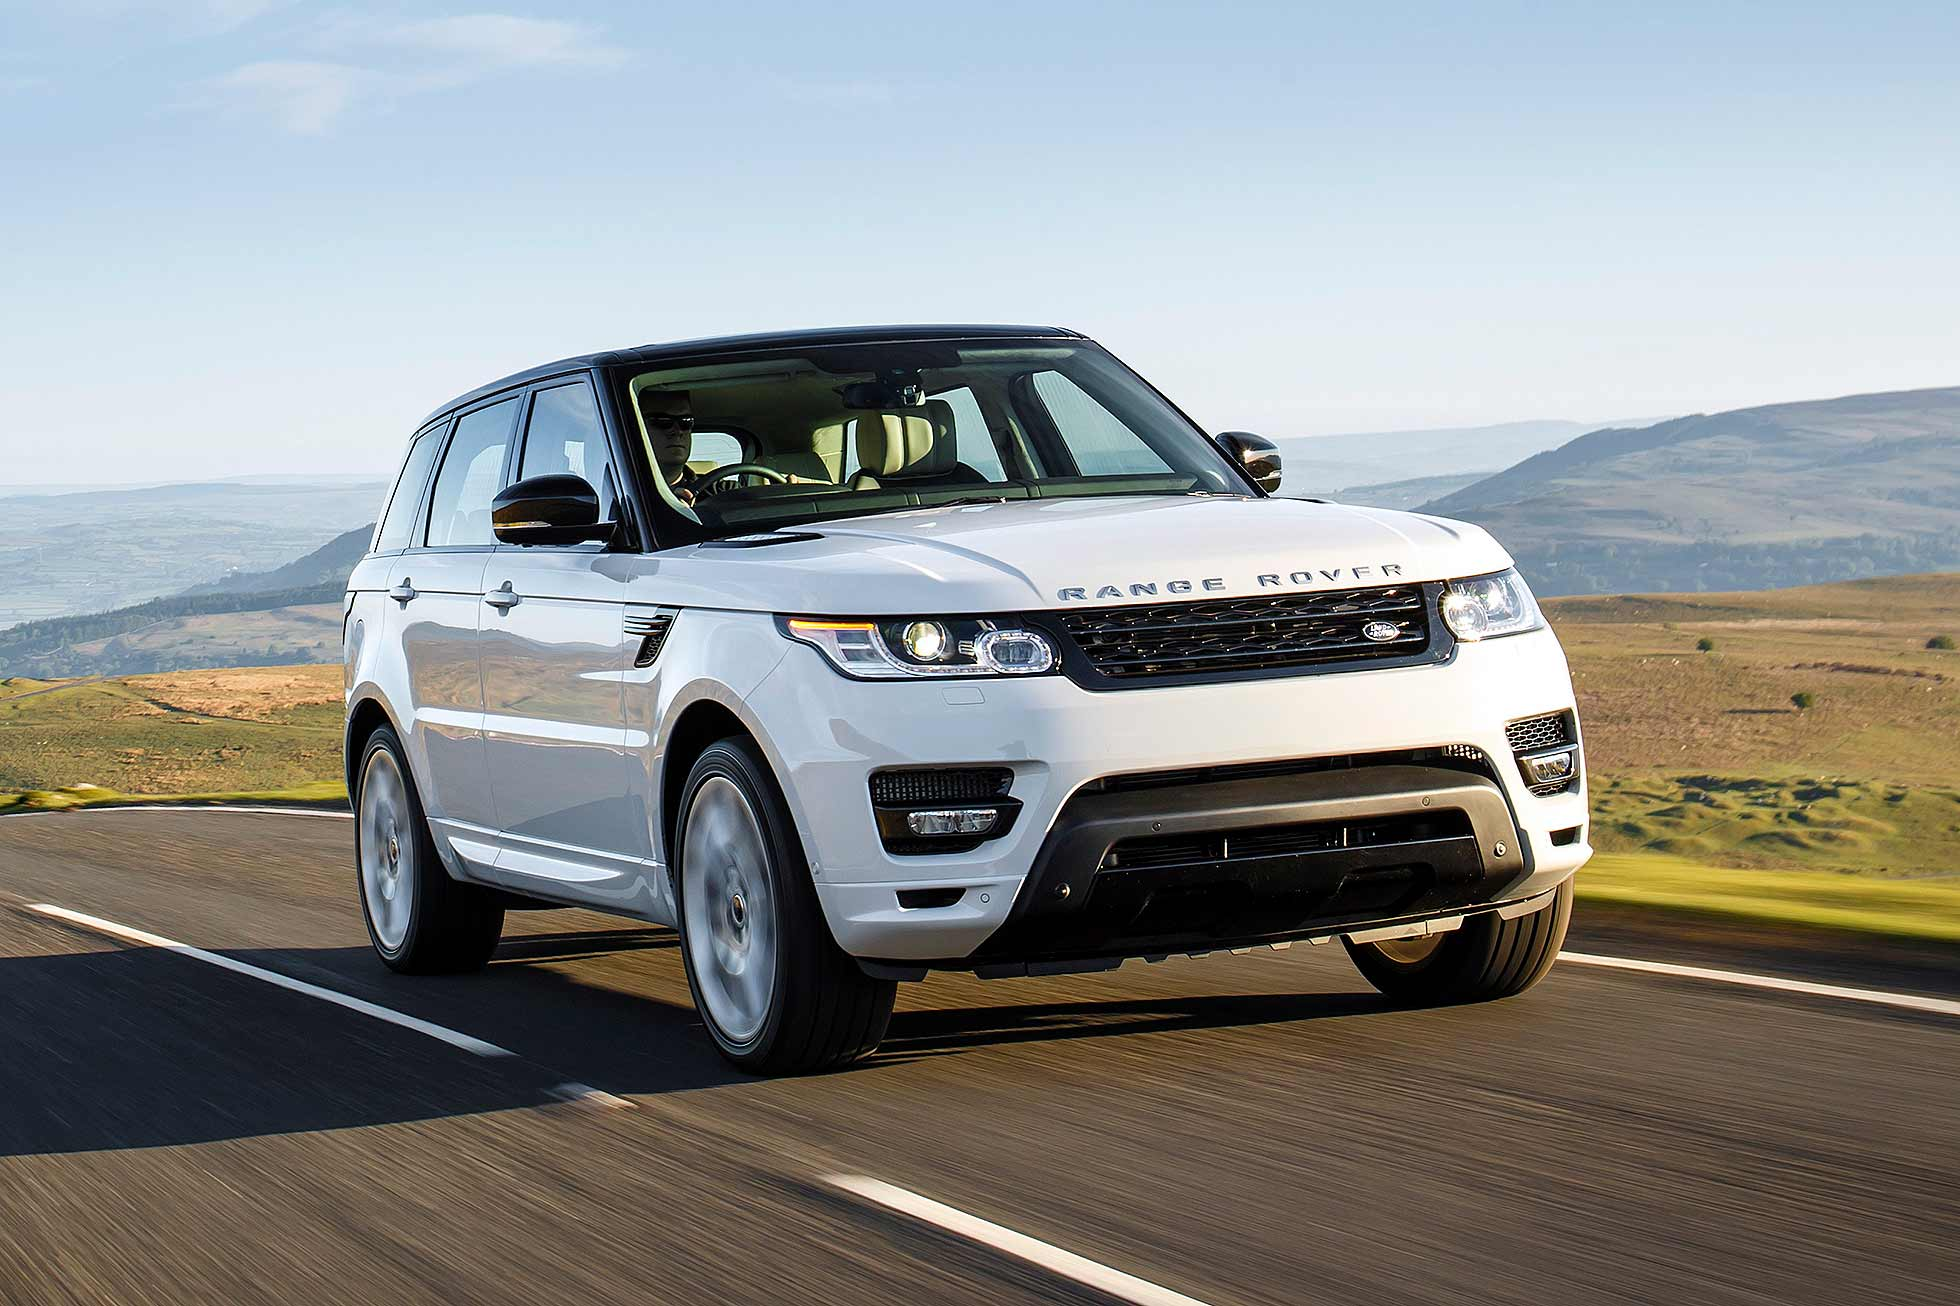 range rover sport supercharged review 2015 road test motoring research. Black Bedroom Furniture Sets. Home Design Ideas